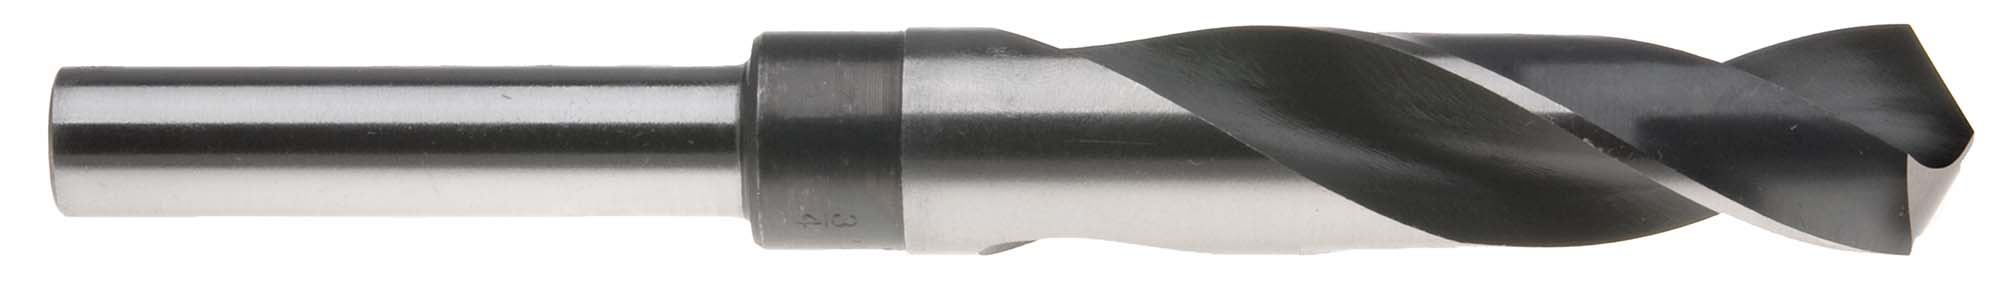 "7/8"" USA Drill Bit with 1/2"" Shank (S+D Type) High Speed Steel"